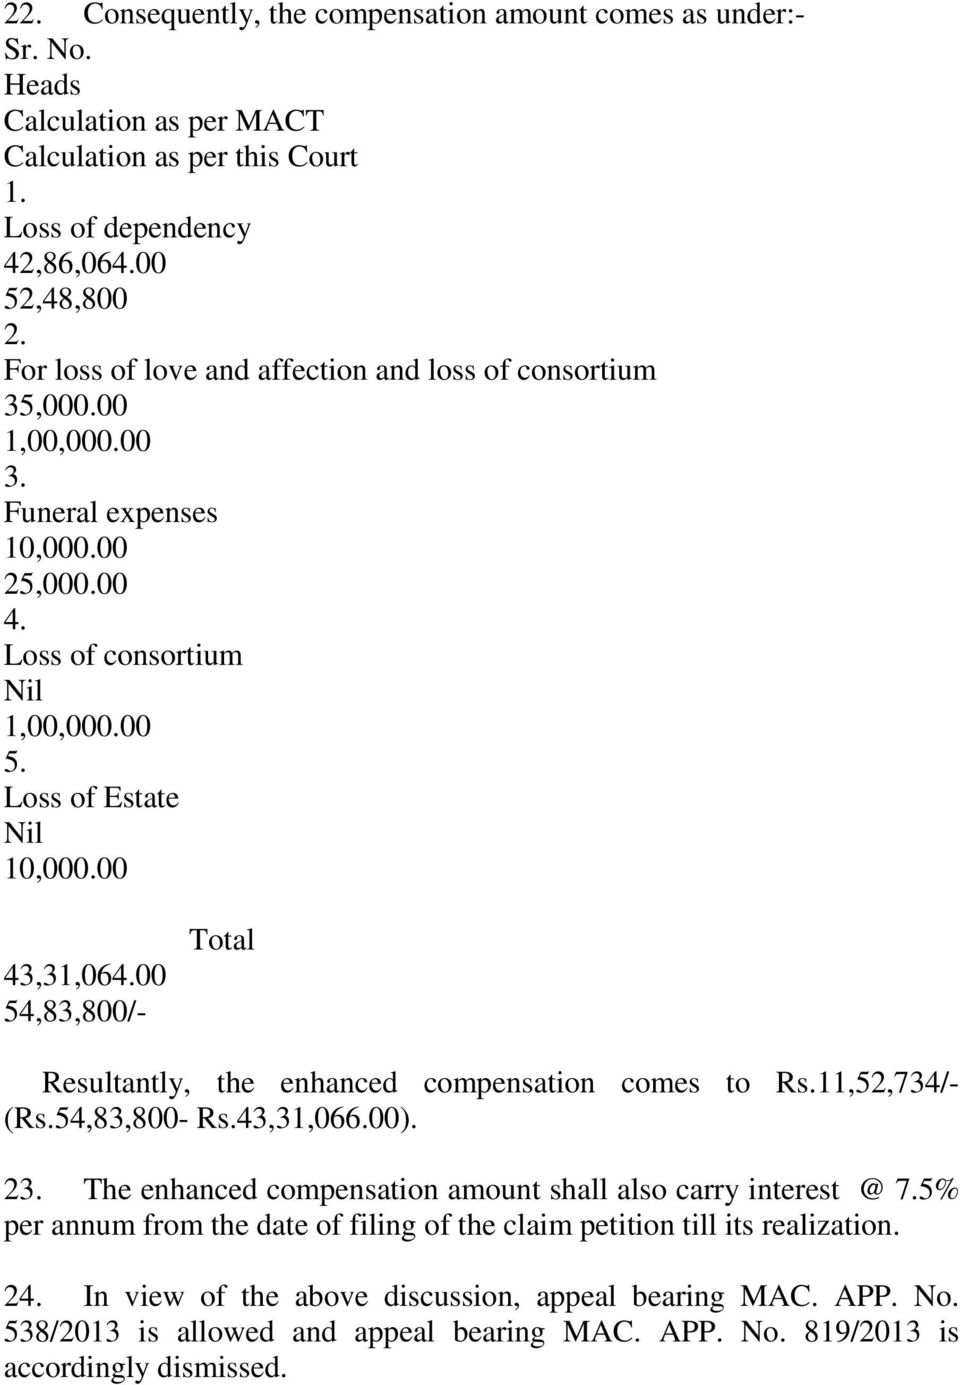 00 54,83,800/- Total Resultantly, the enhanced compensation comes to Rs.11,52,734/- (Rs.54,83,800- Rs.43,31,066.00). 23. The enhanced compensation amount shall also carry interest @ 7.